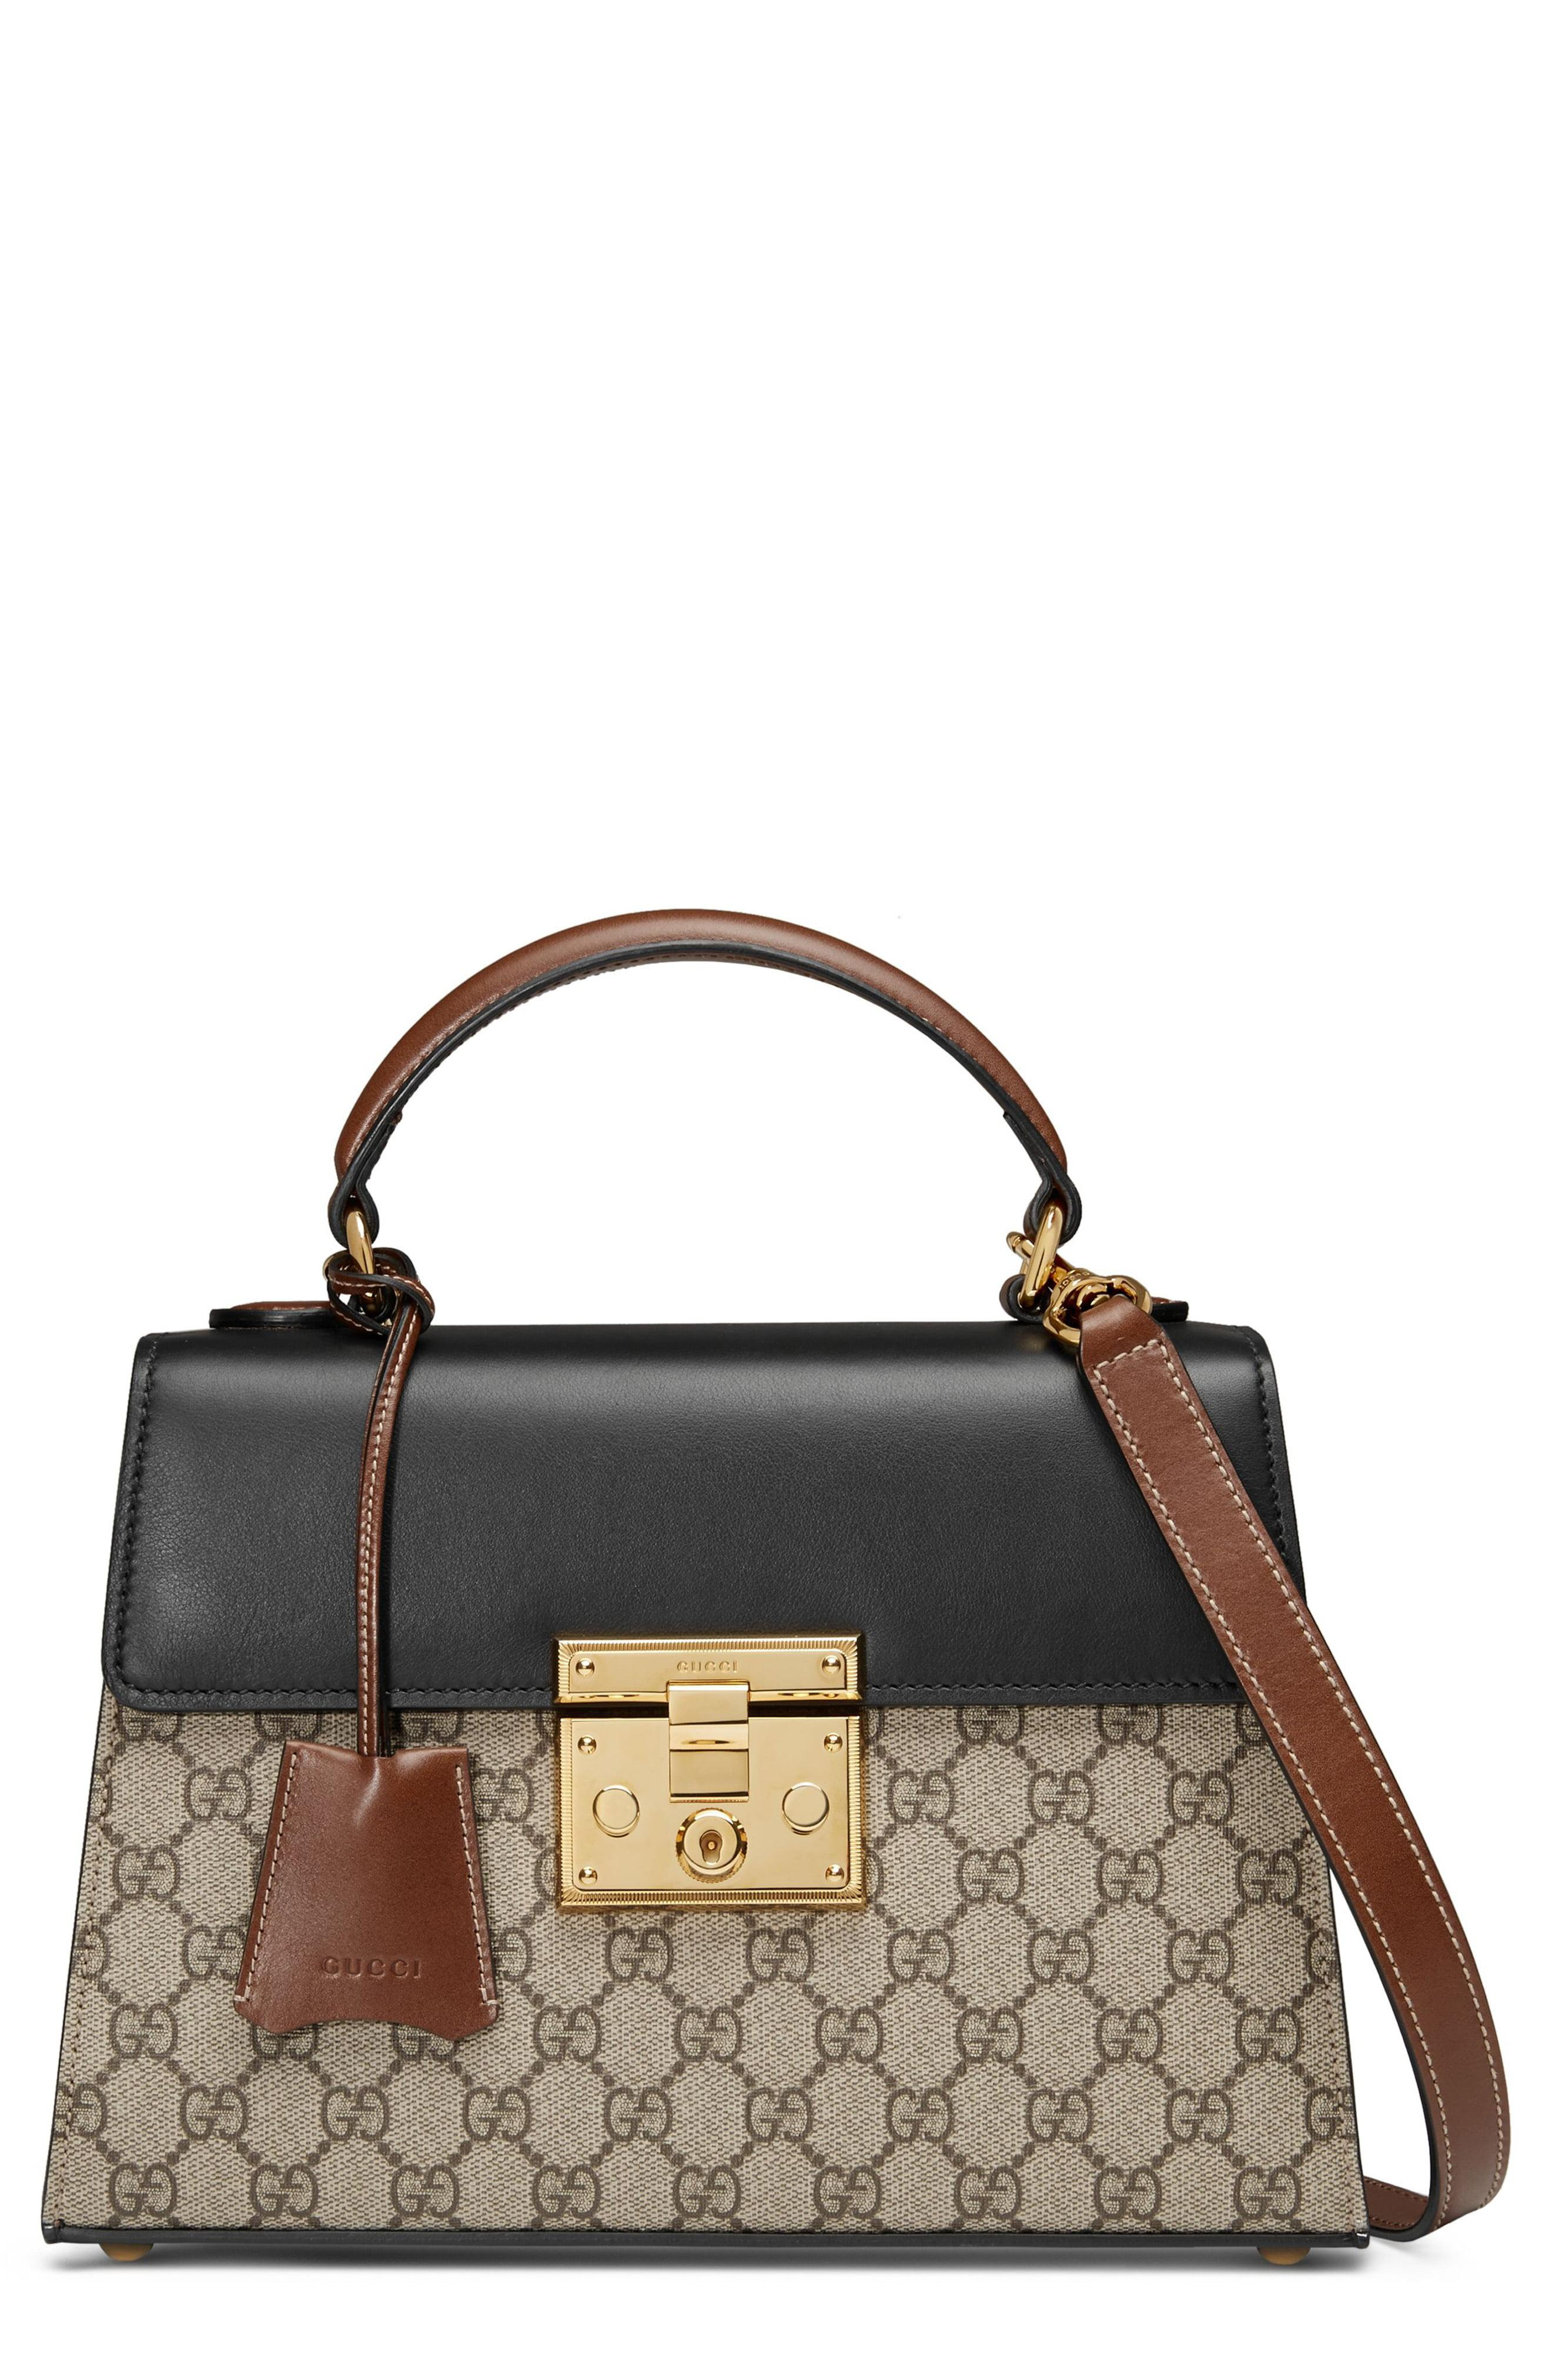 5a3f6ca45bd043 Gucci. Women's Black Small Padlock Gg Supreme Canvas & Leather Top Handle  Satchel